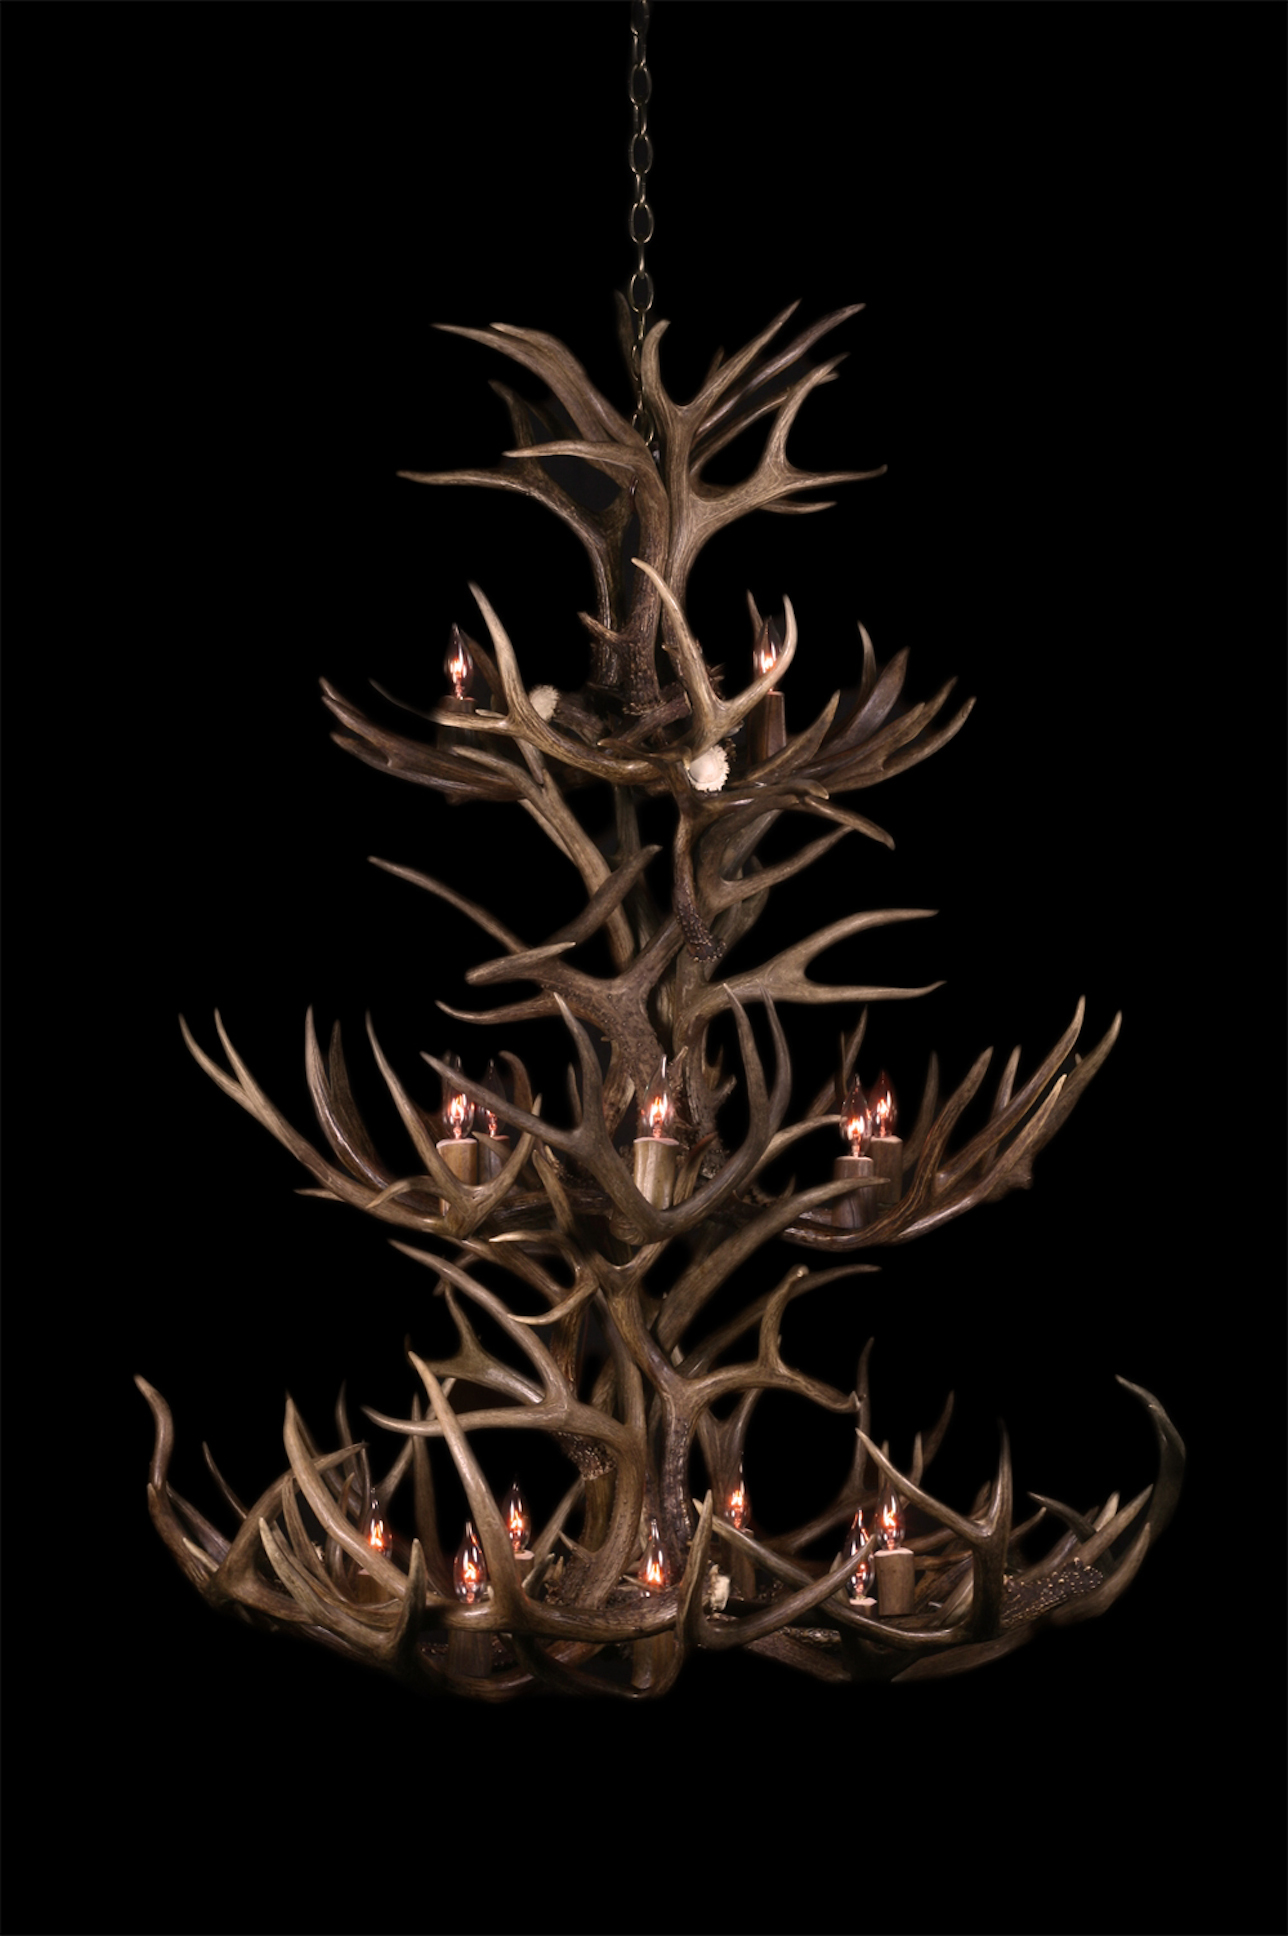 Tripple Tier Mule Deer Chandelier